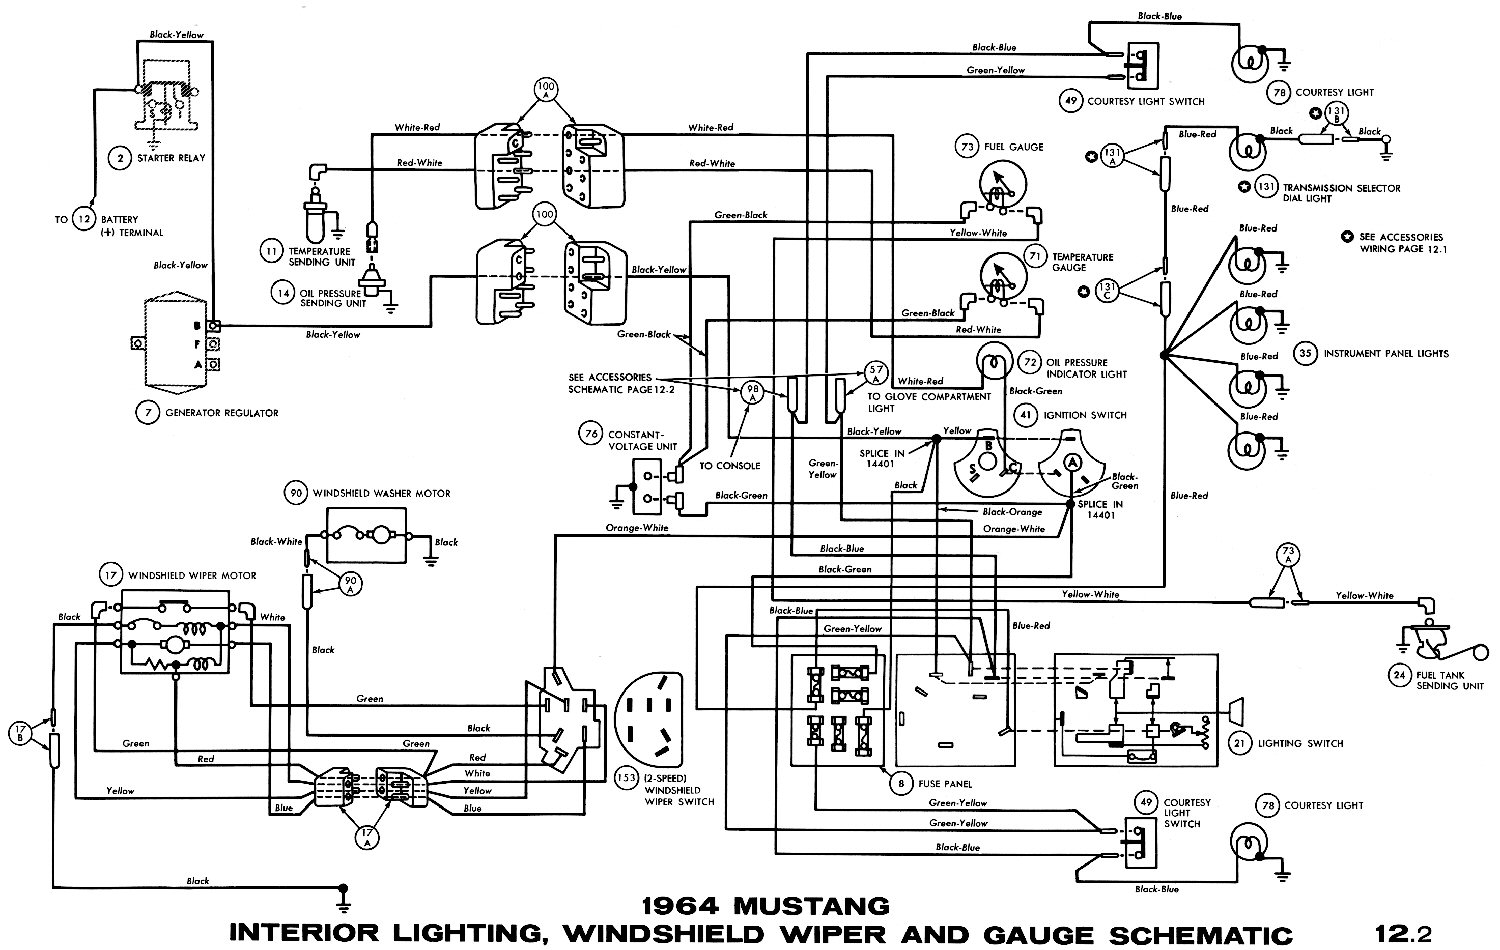 1964k 1966 mustang wiring diagram 1967 mustang wiring schematic \u2022 wiring 1969 mustang alternator wiring diagram at gsmportal.co